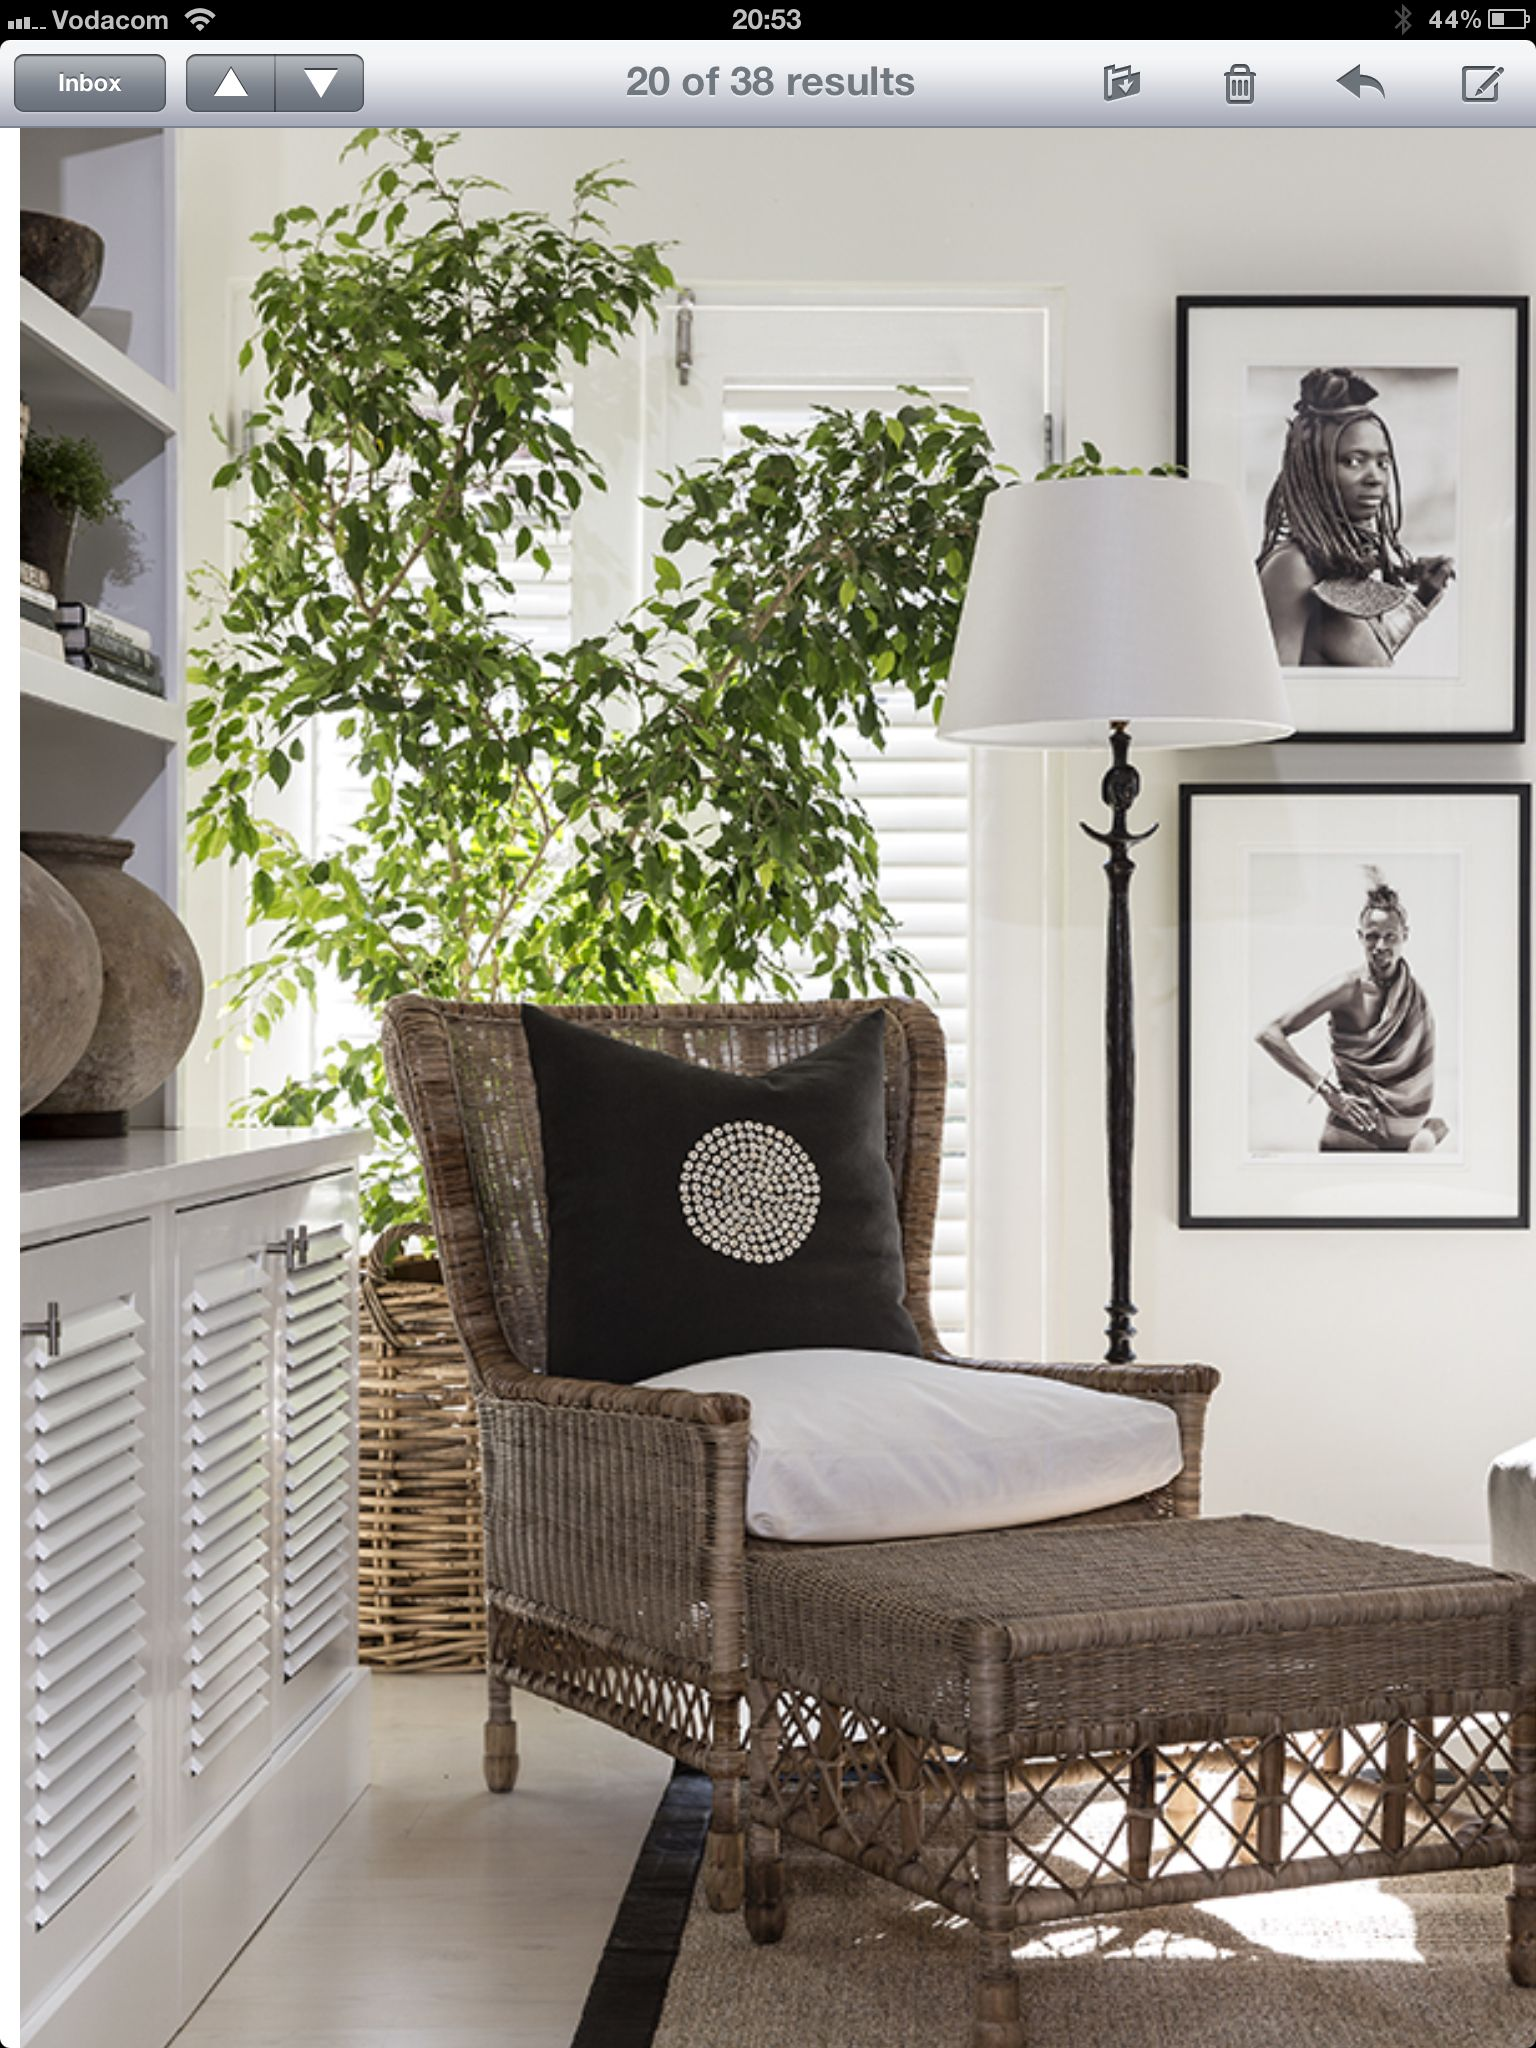 All You Need Is Black And White Print Of African Tribal Images